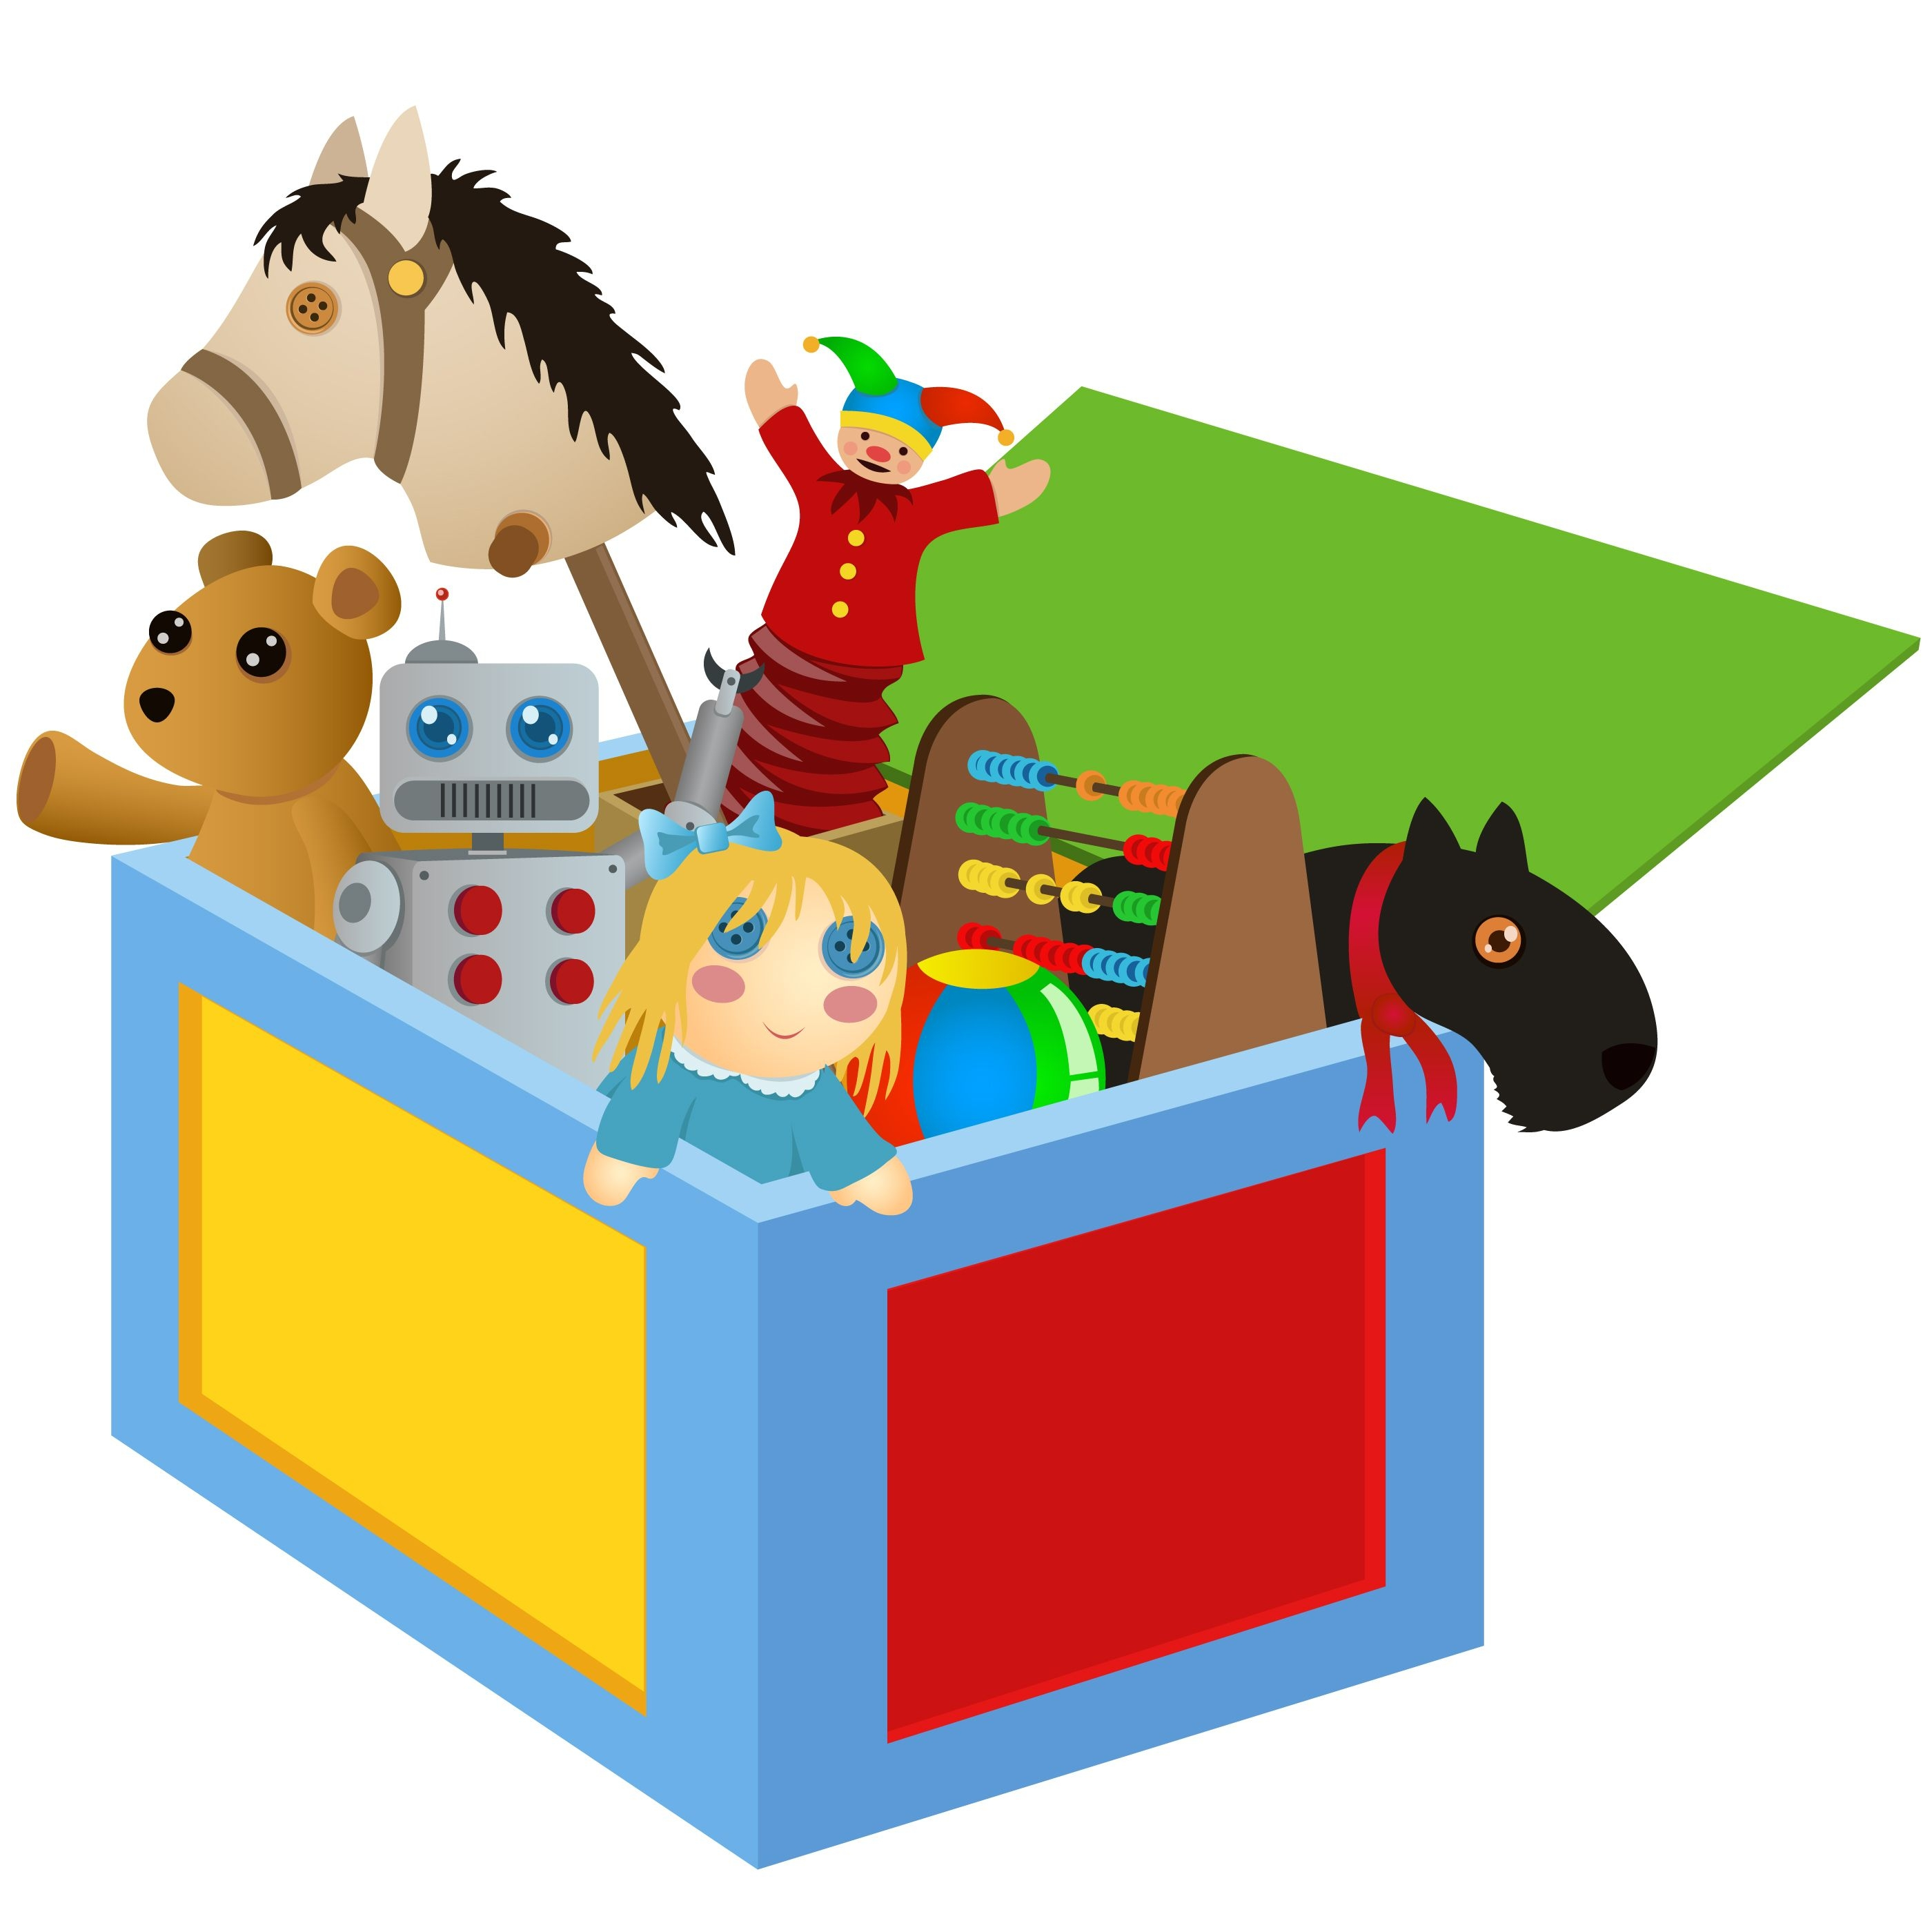 Toys clipart illustration. Fresh toy collection digital